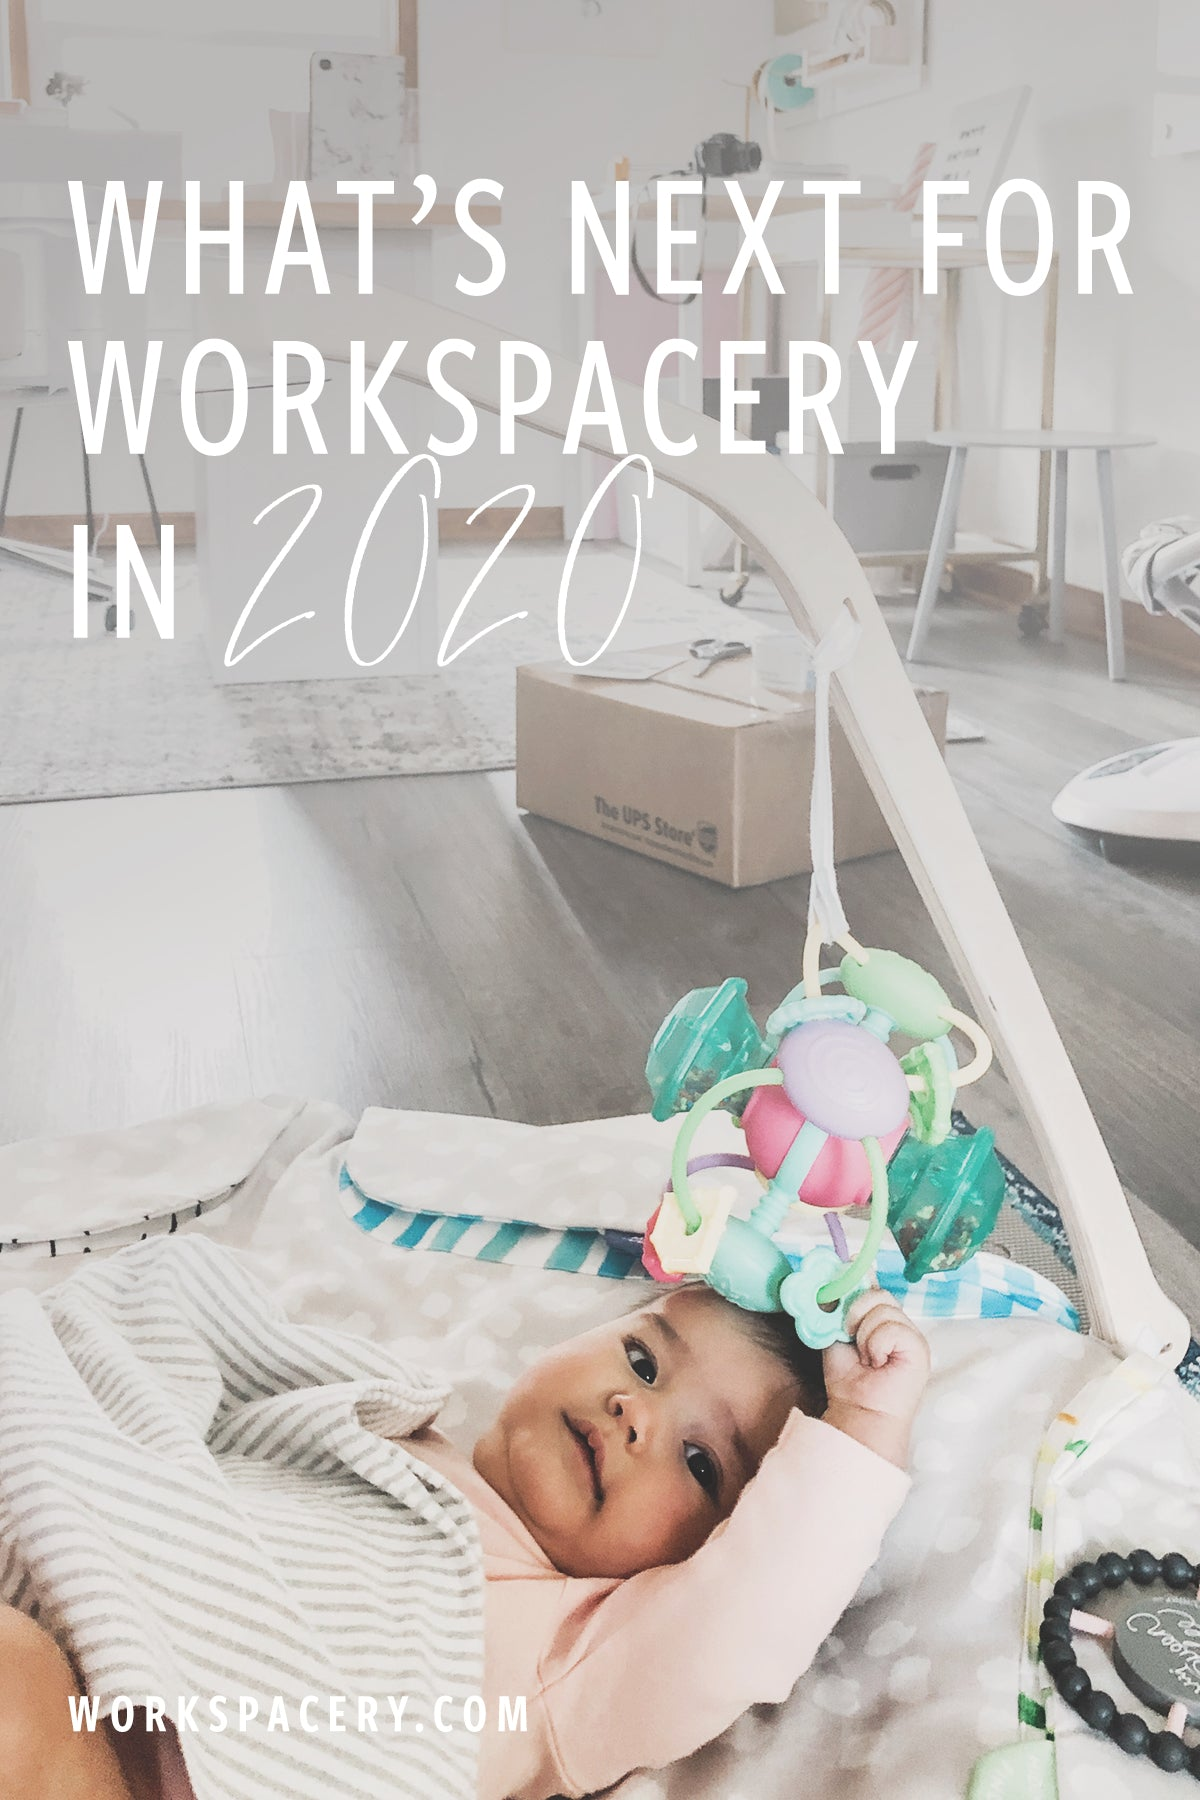 What's Next for Workspacery in 2020